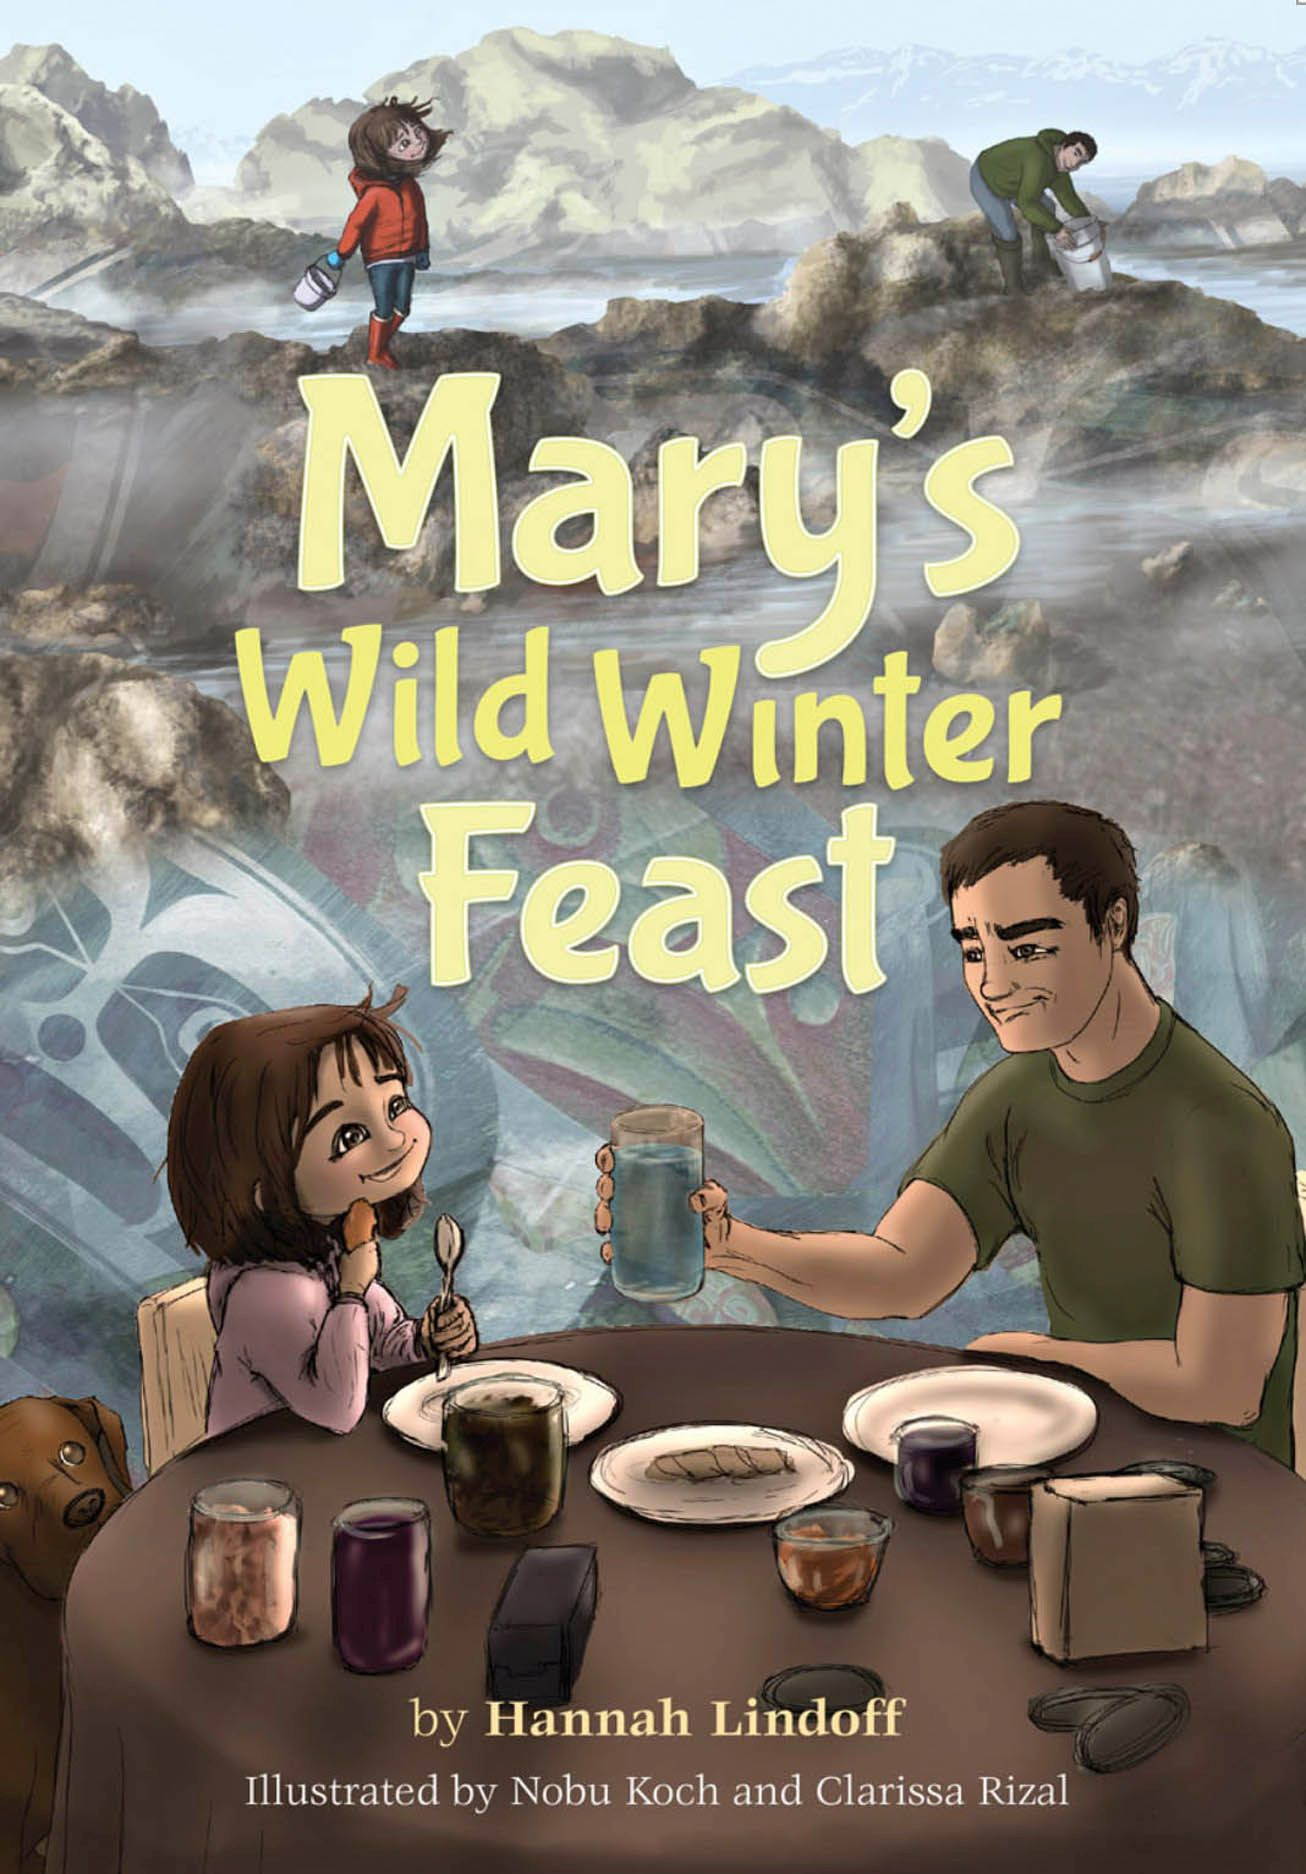 Mary's Wild Winter Feast